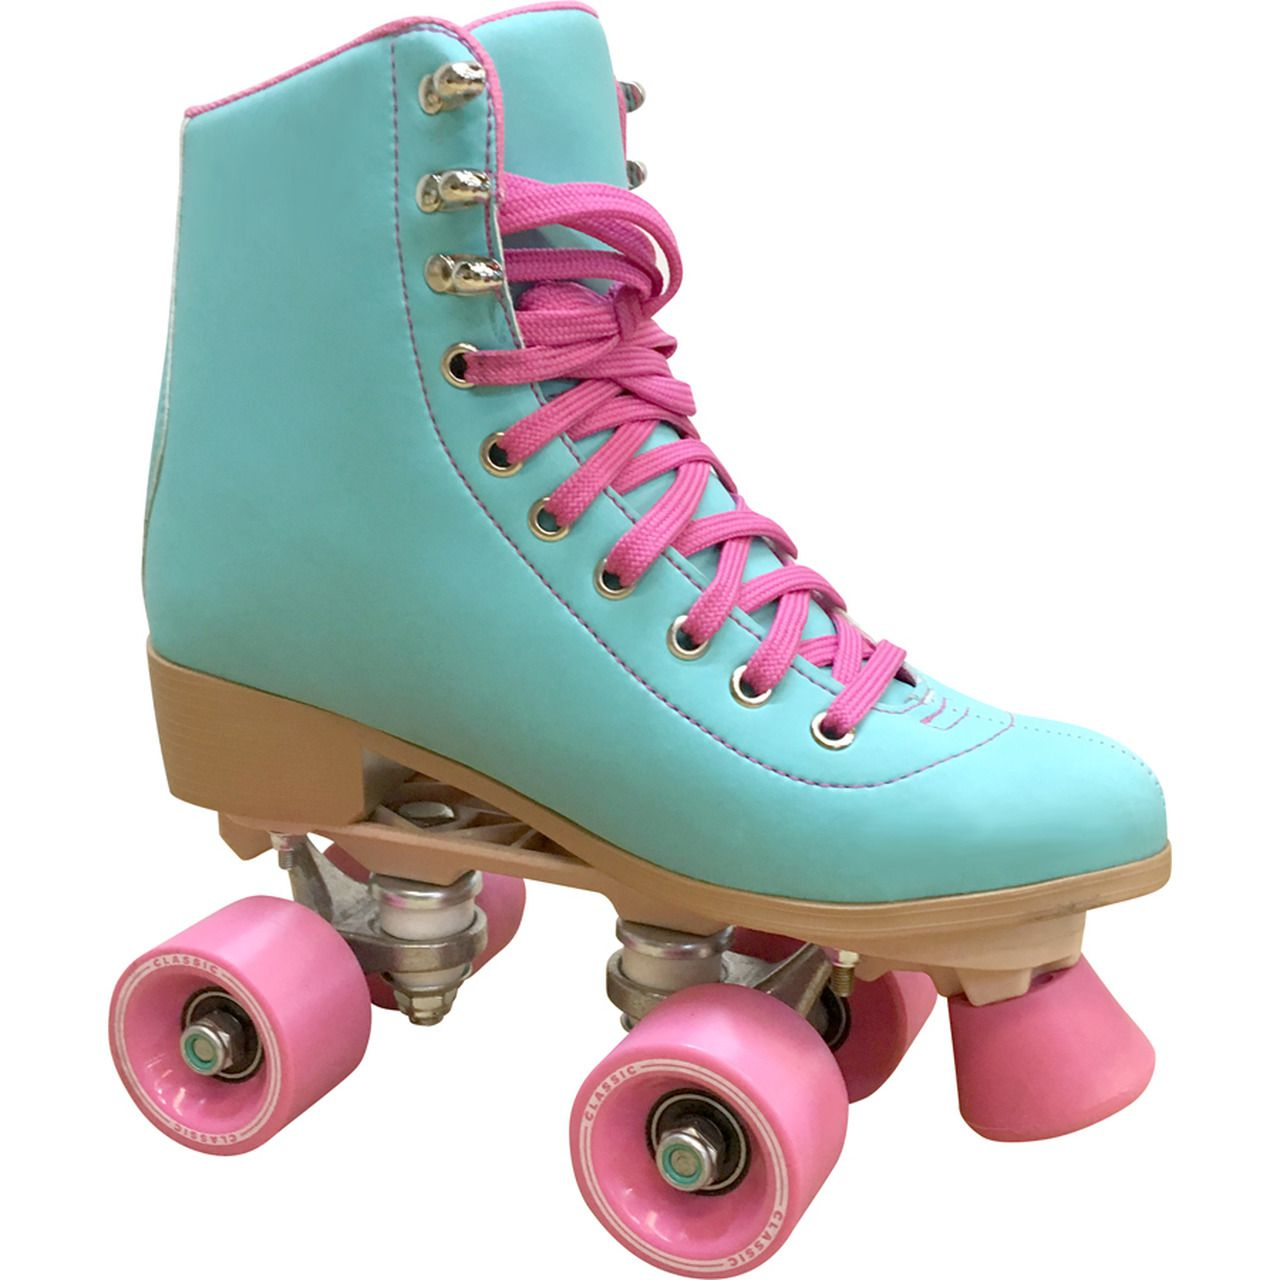 Patins Quad OWL Sports Unicorn